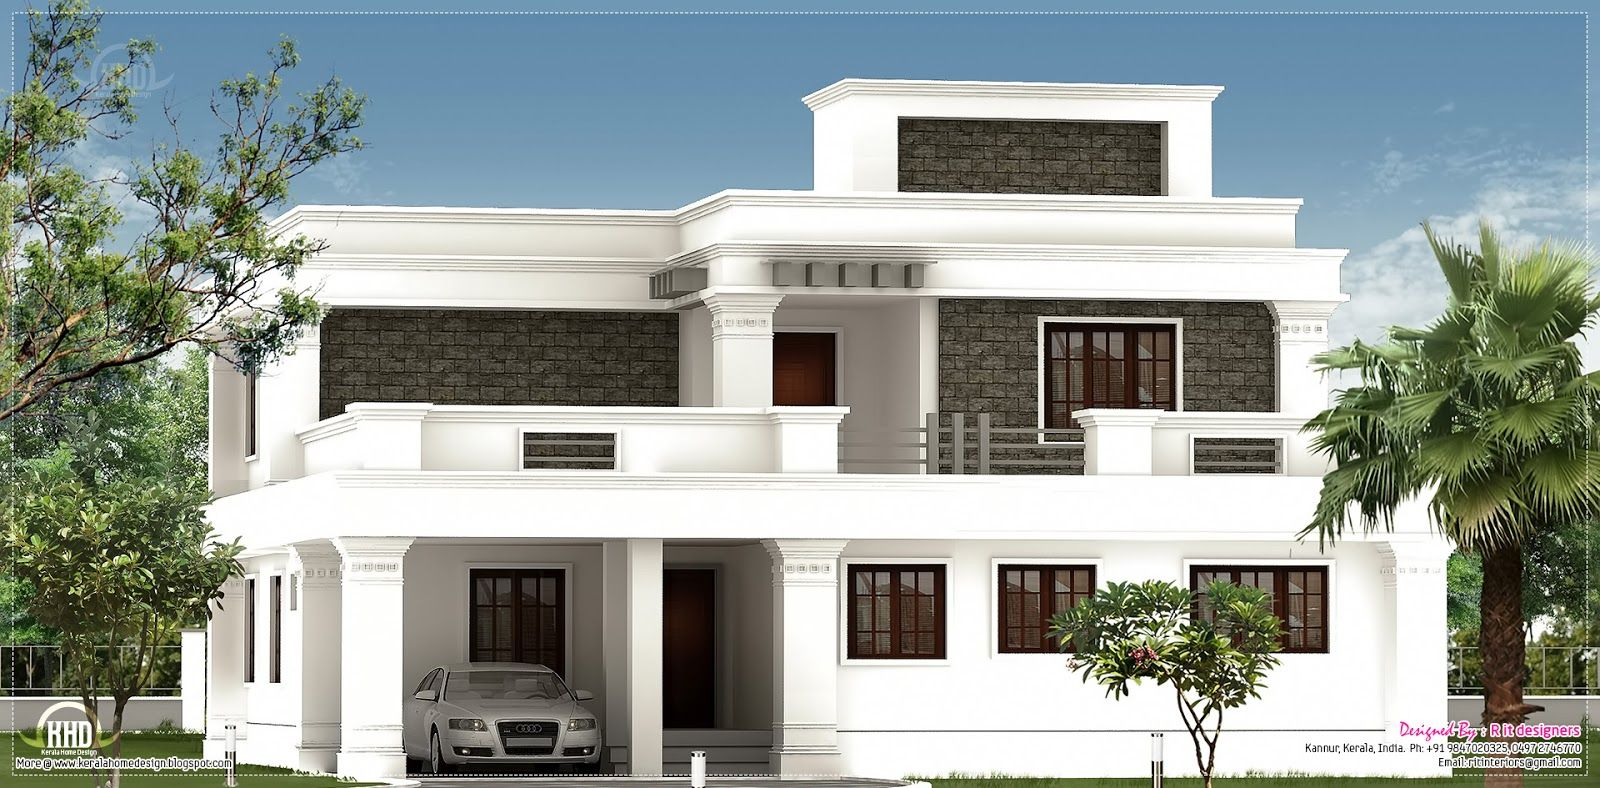 Flat roof homes designs flat roof villa exterior in 2400 for House model design photos